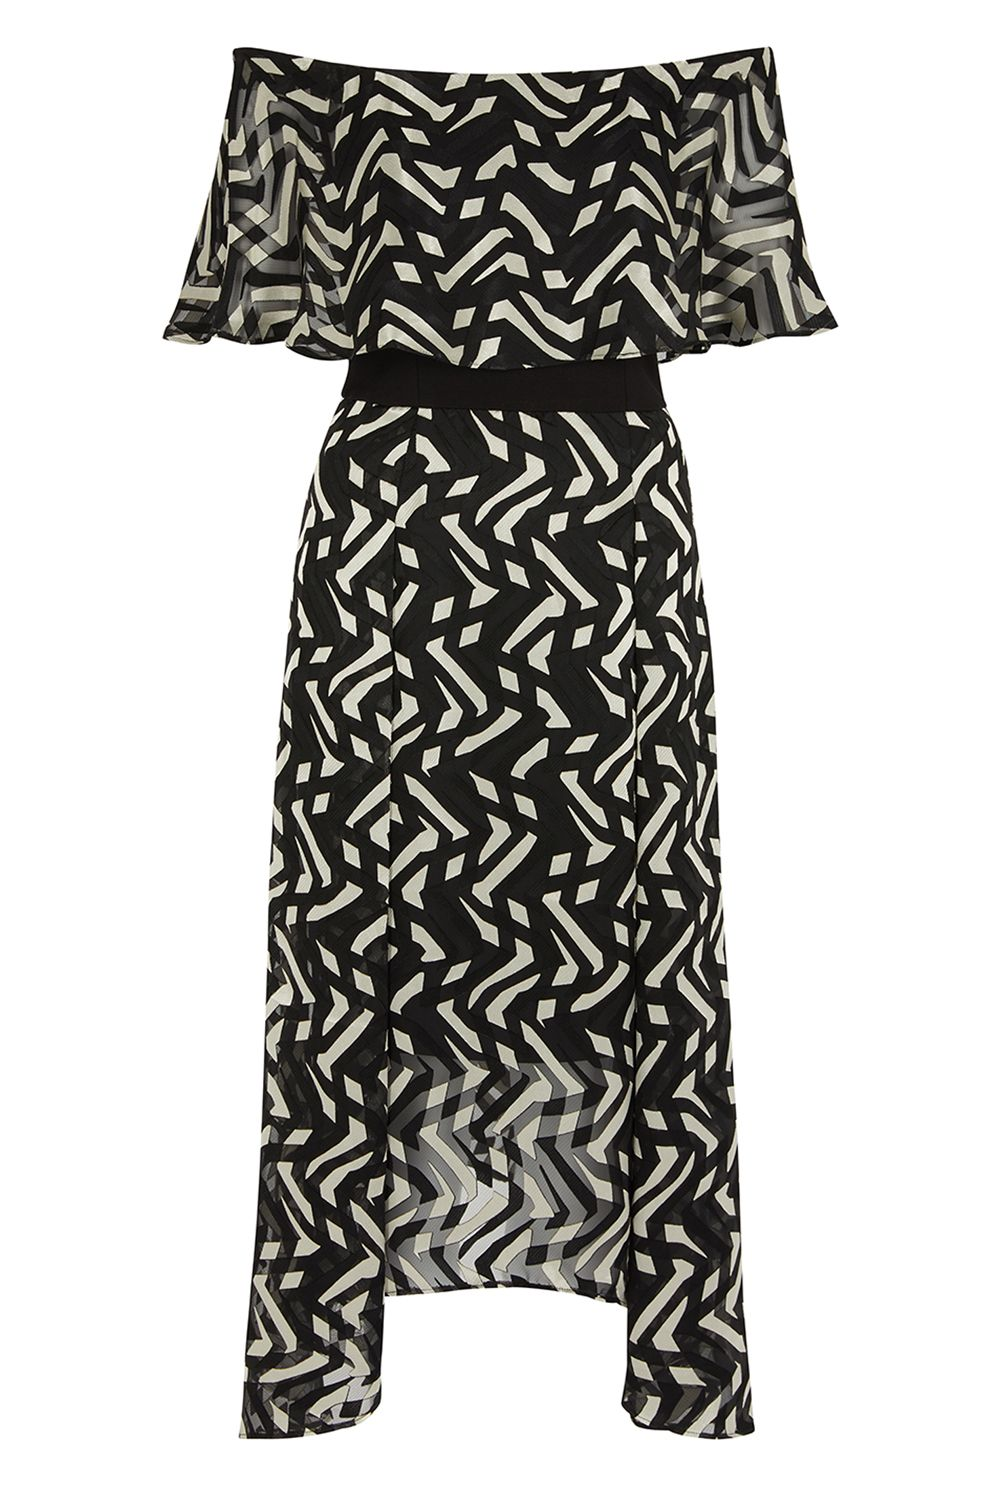 Coast Ada Bardot Midi Dress, Multi-Coloured